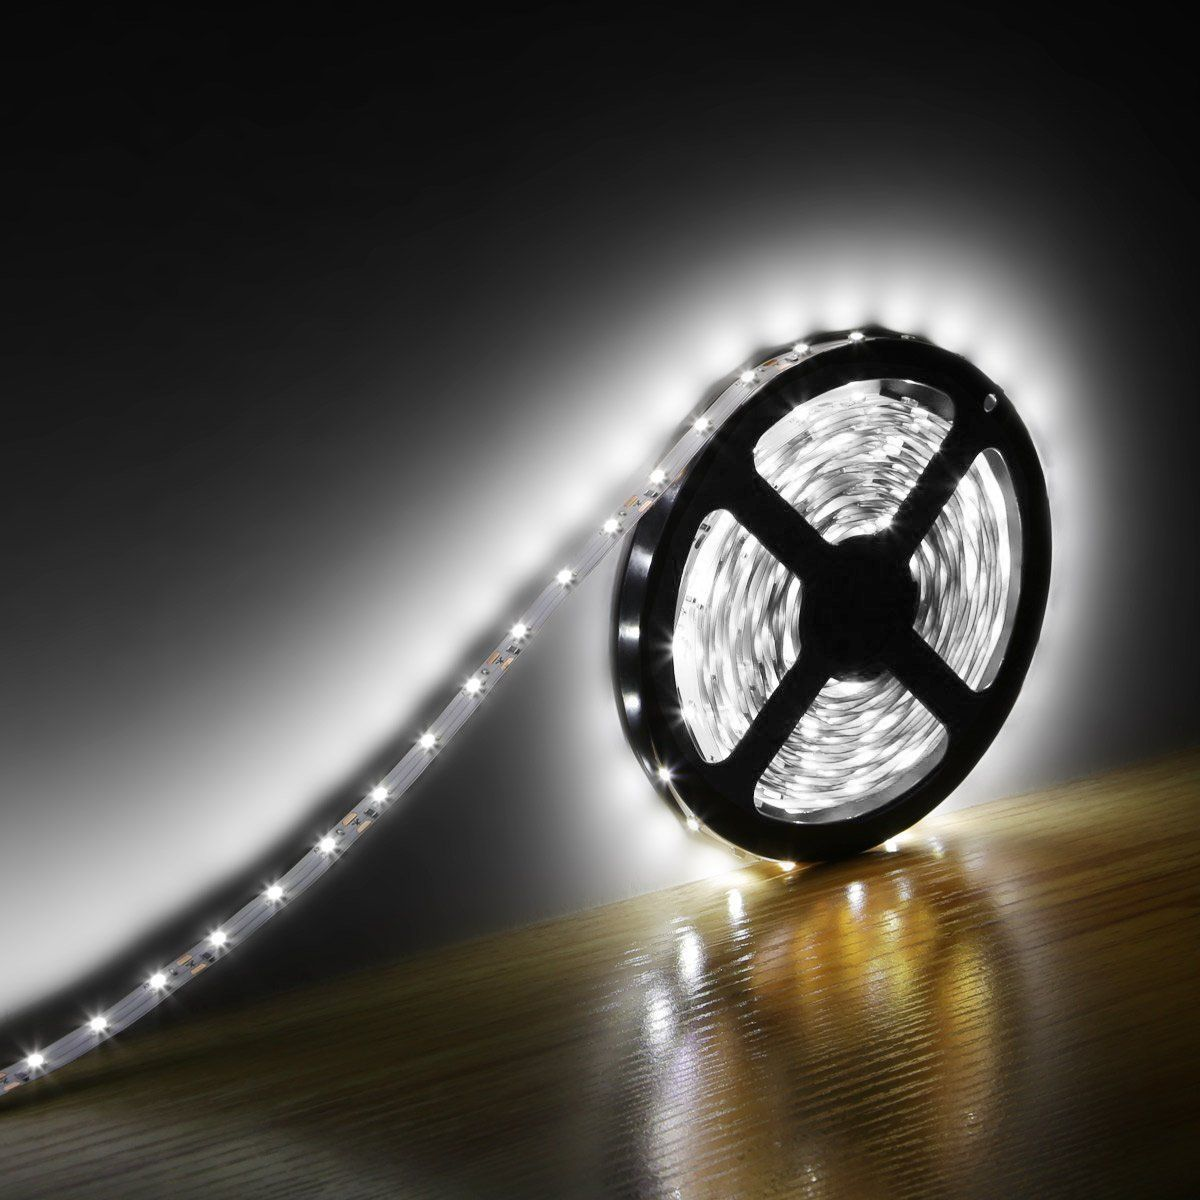 12V Waterproof Led Light Strips Entrancing Le 164Ft 12V Flexible Led Light Strip Led Tape 6000K Daylight White Inspiration Design